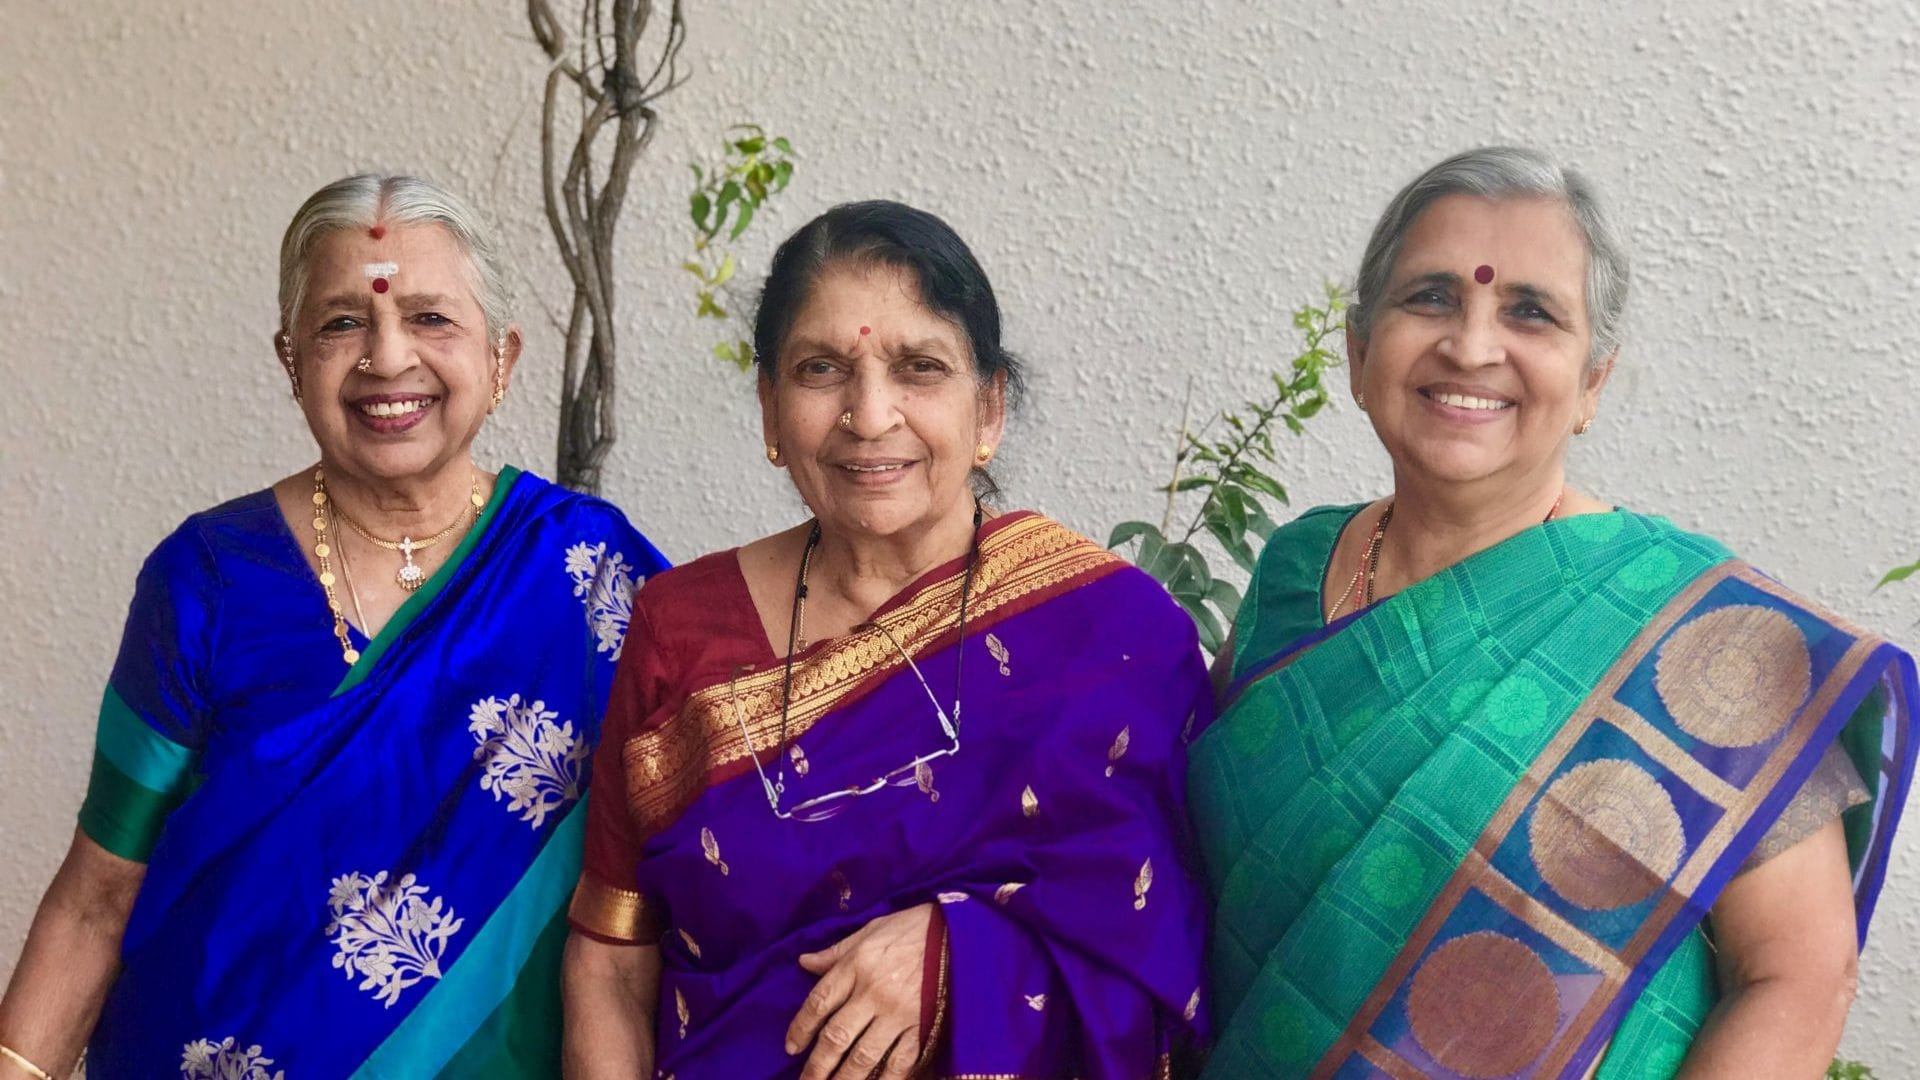 Women in the author's family.